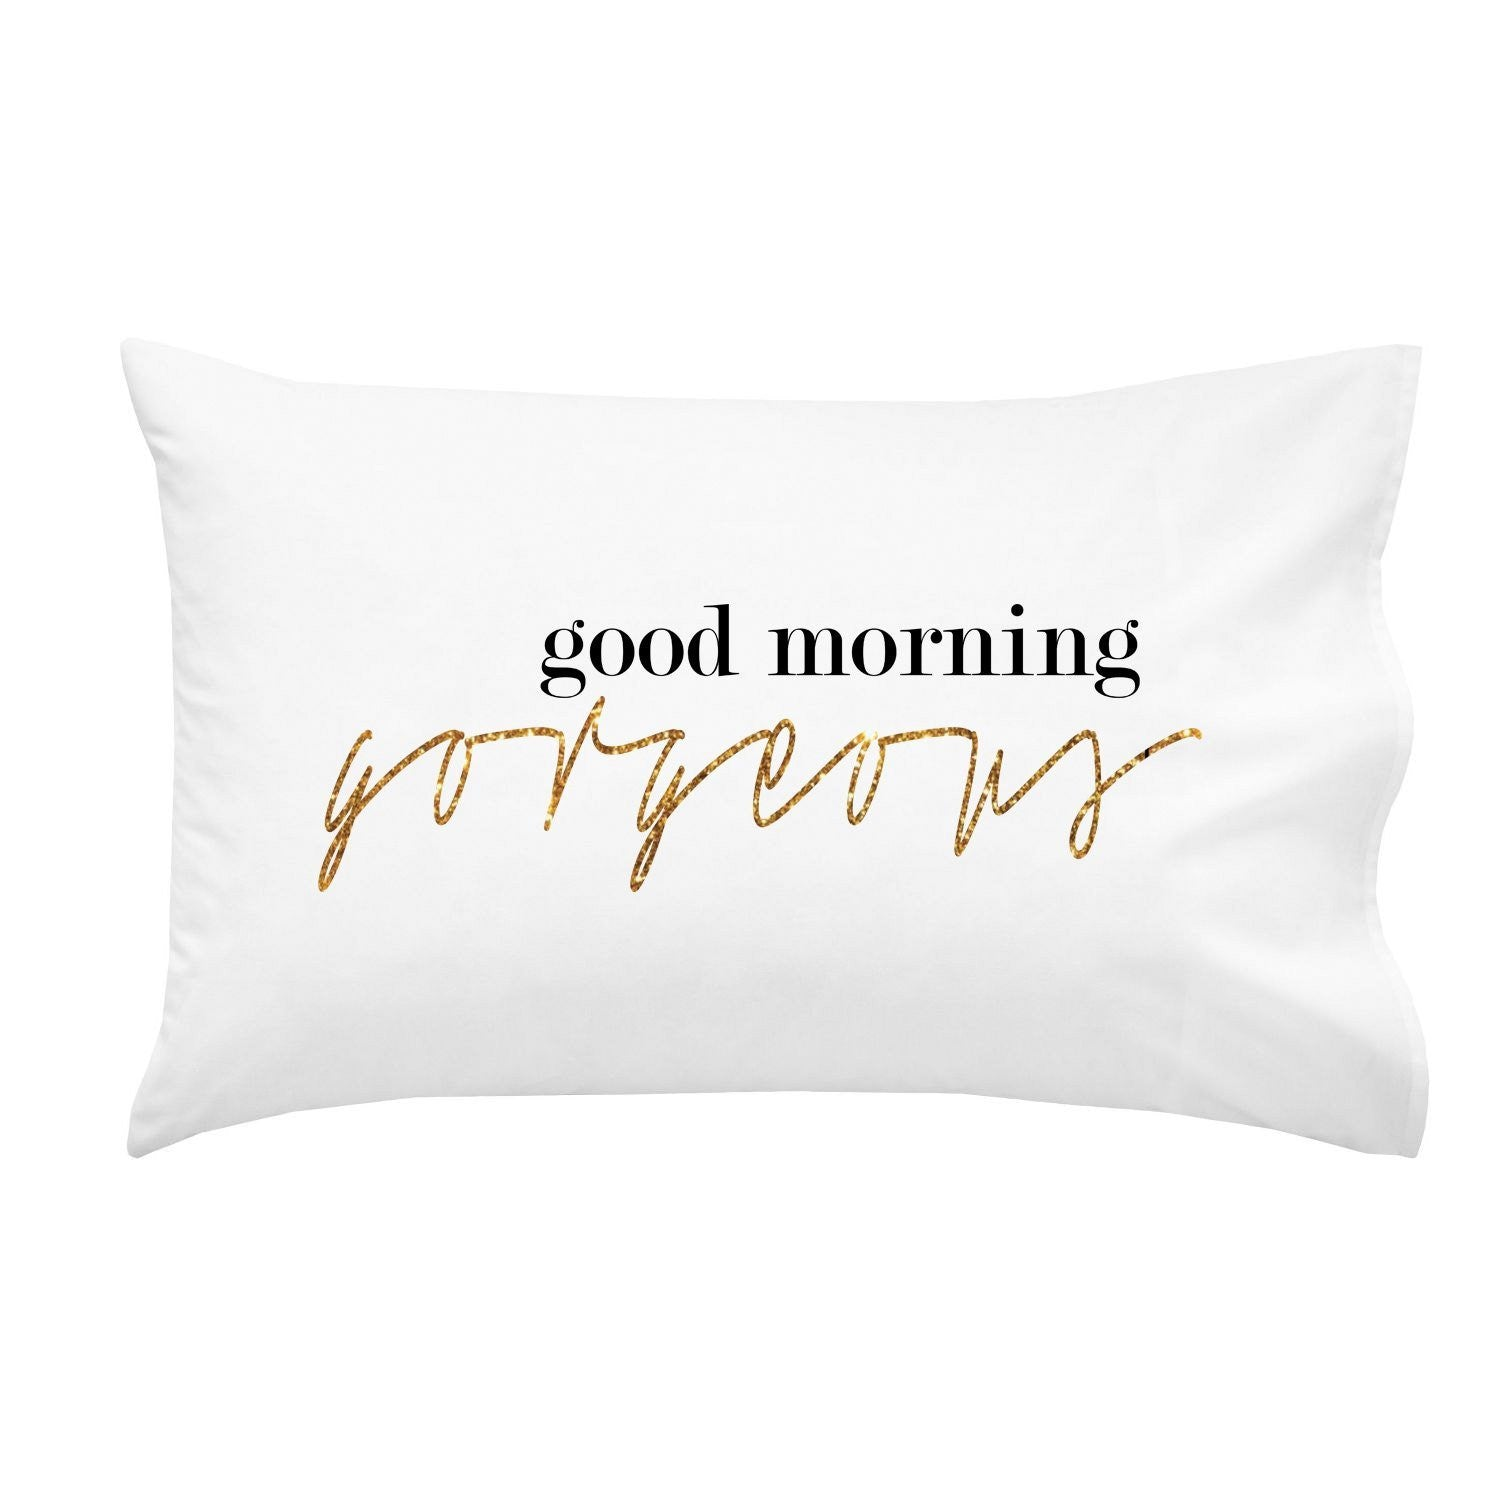 Good Morning Gorgeous Couples Pillow Case Wedding Anniversary Gift His and Her Gifts (1 Queen / Standard Pillowcase)